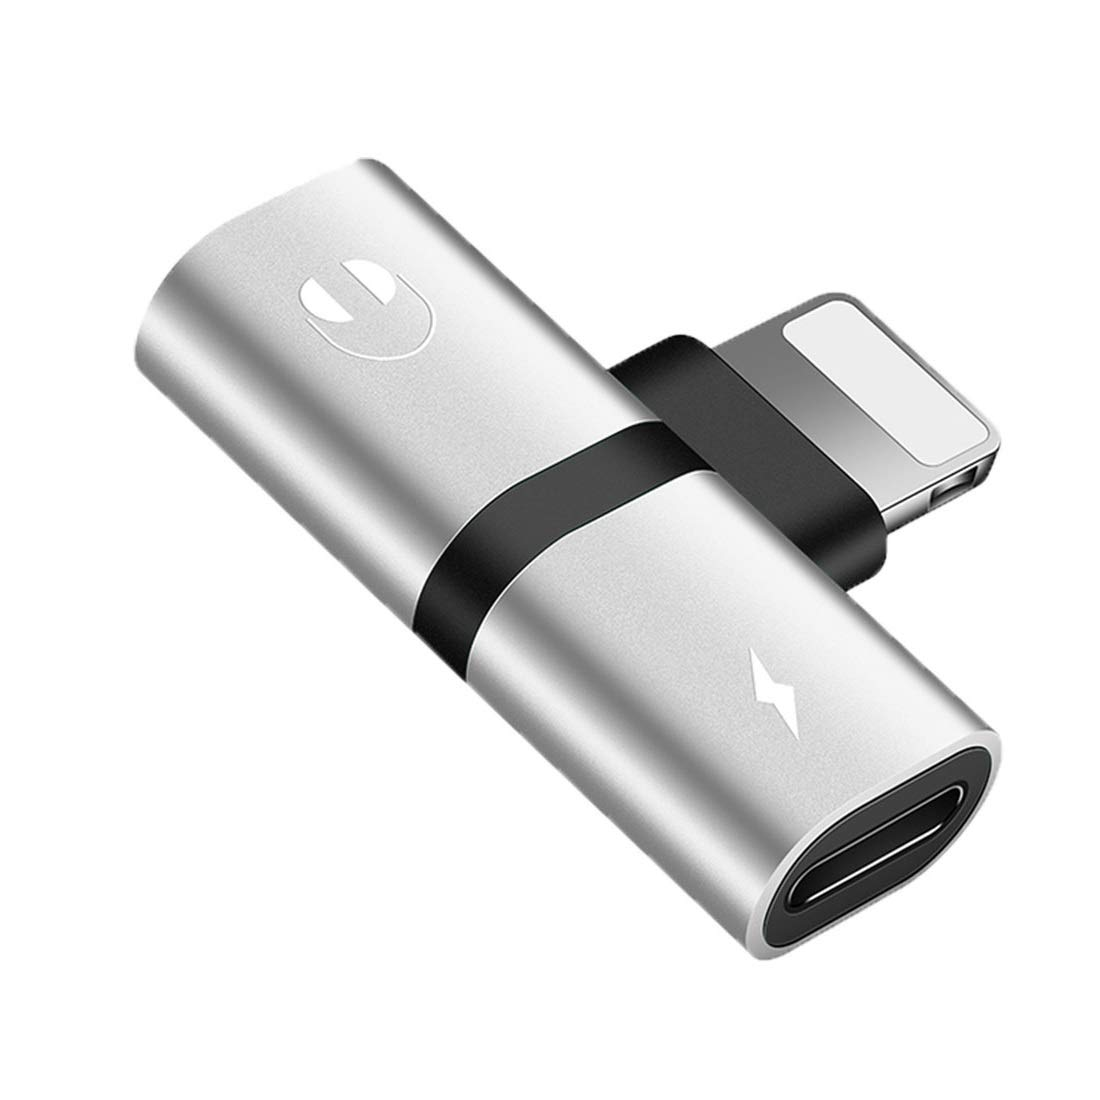 Headphone Adapter for iPhone Aux Adapter Audio and Charging Adapter Splitter Converter for iPhone XR XS XS Max X iPhone 8//8 Plus iPhone 7//7 Plus iPod iPad iOS 11,12